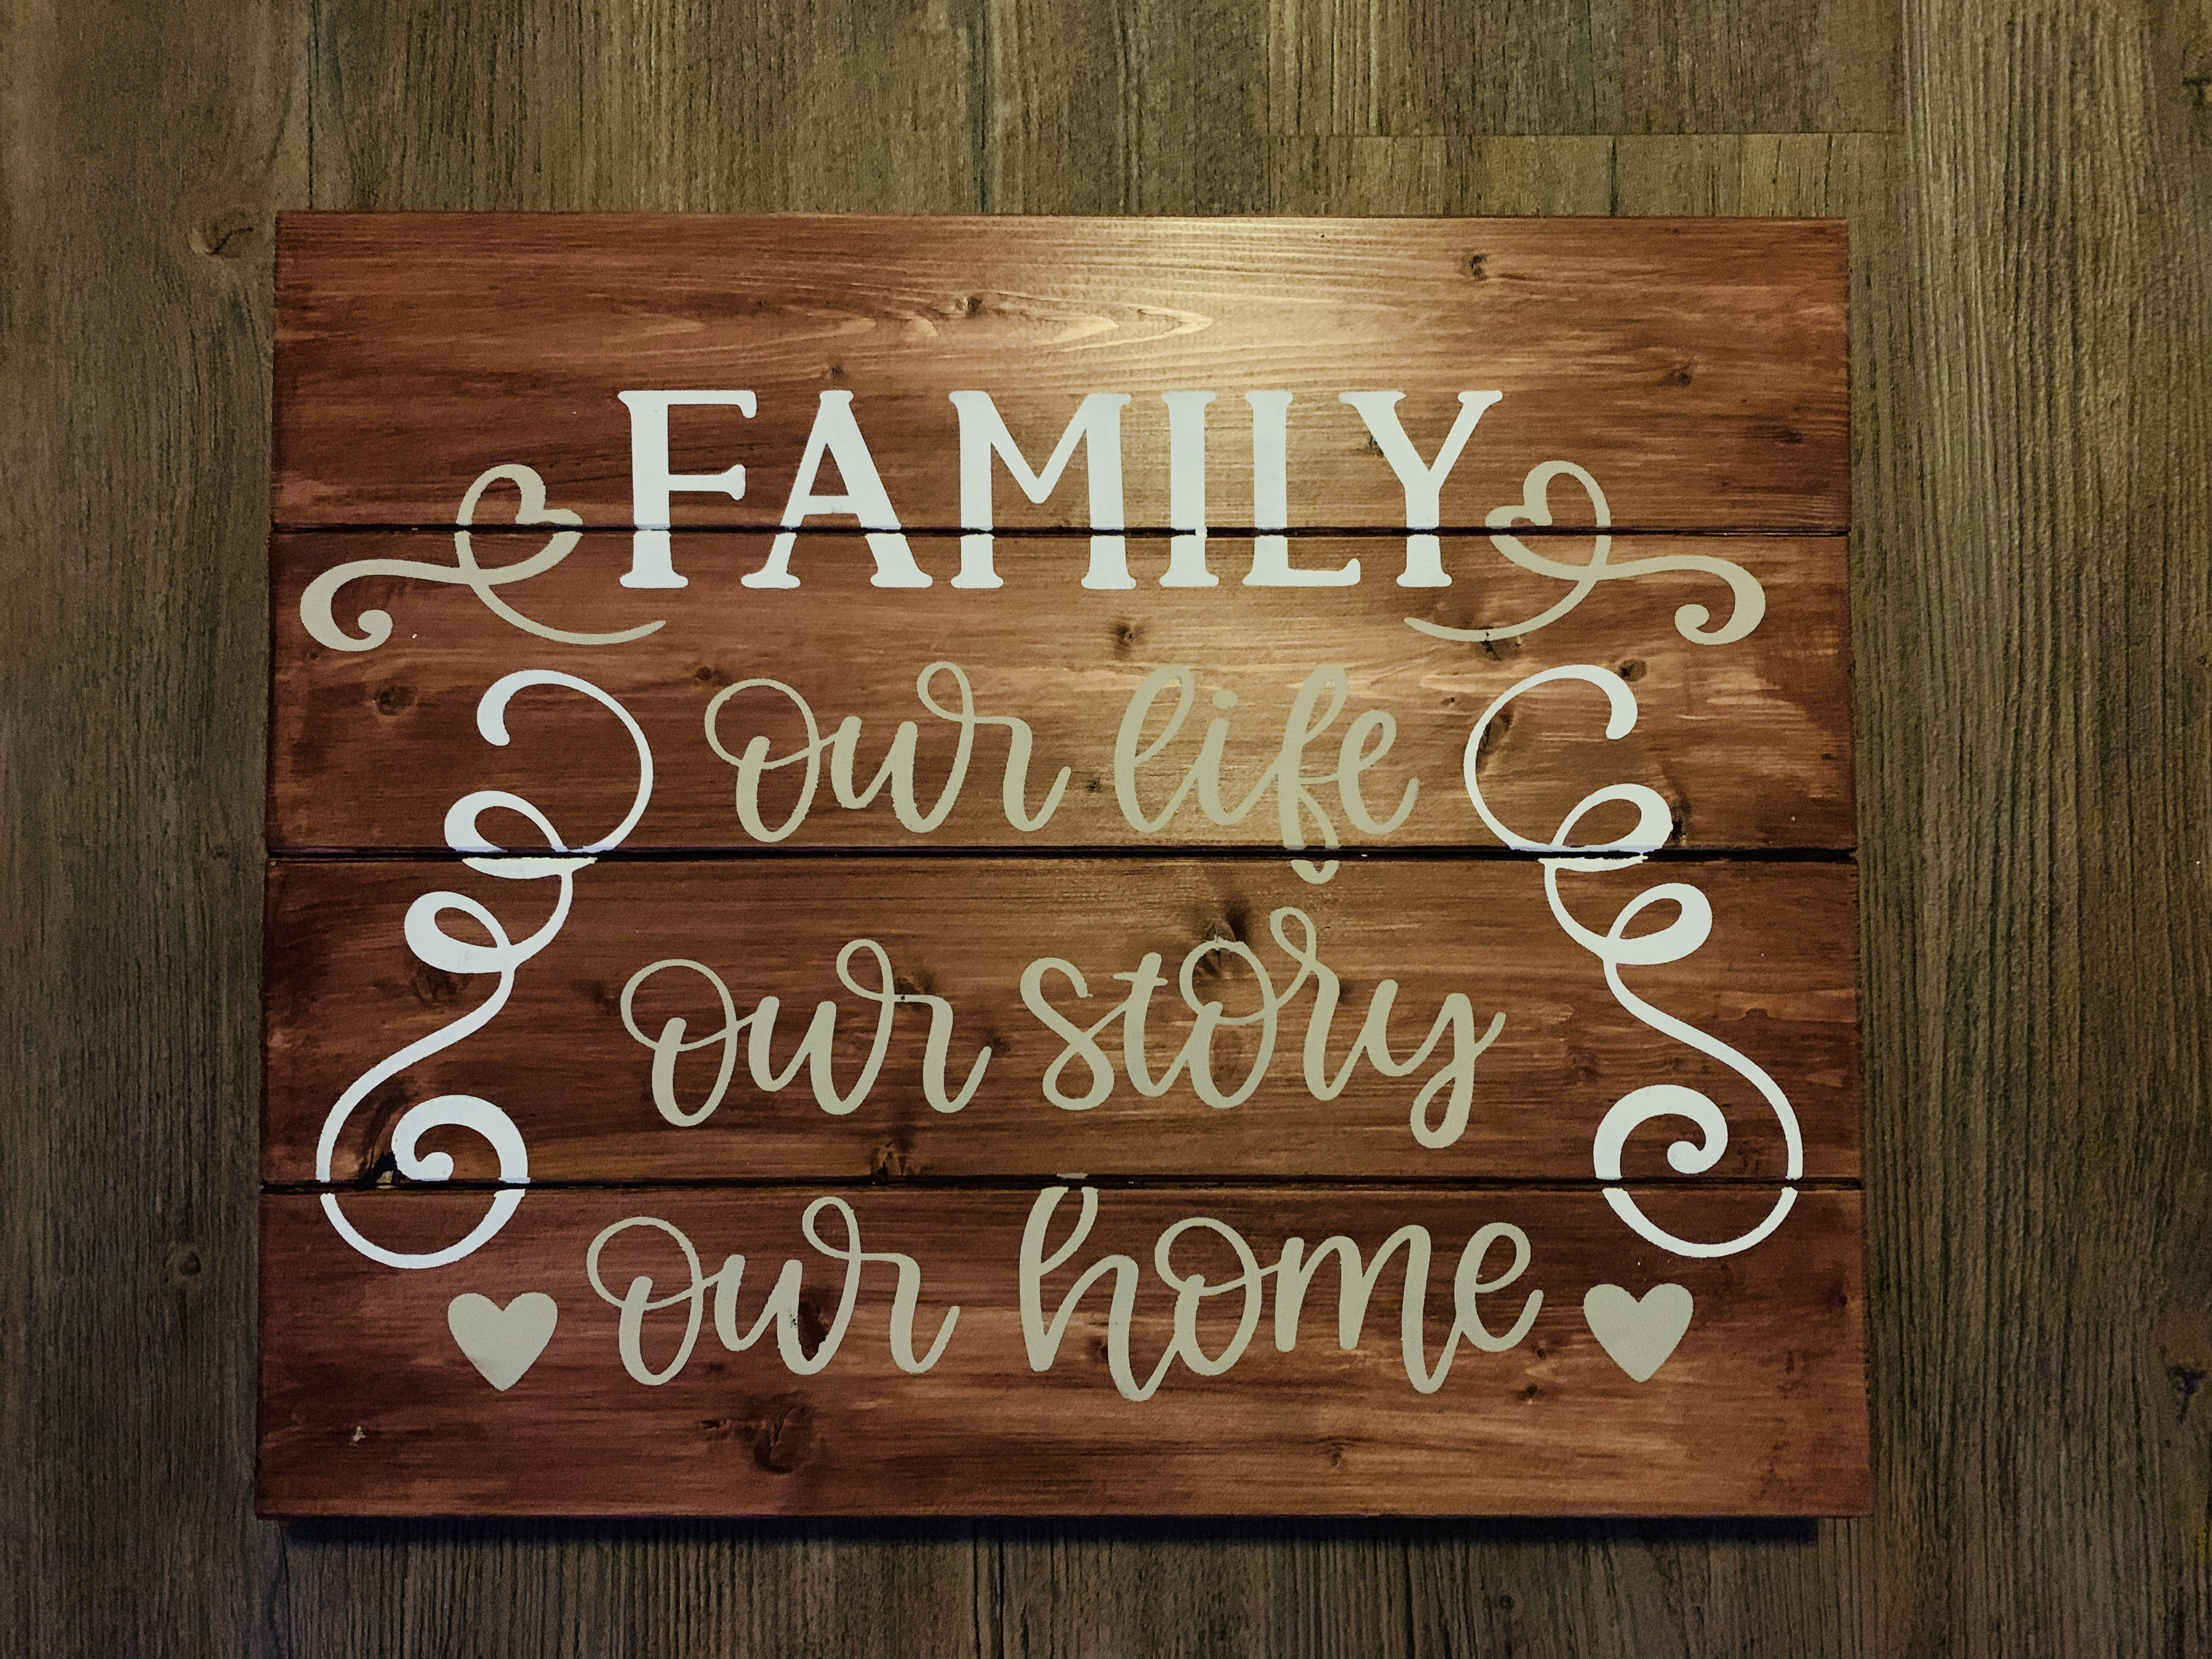 Family, our life, our story...